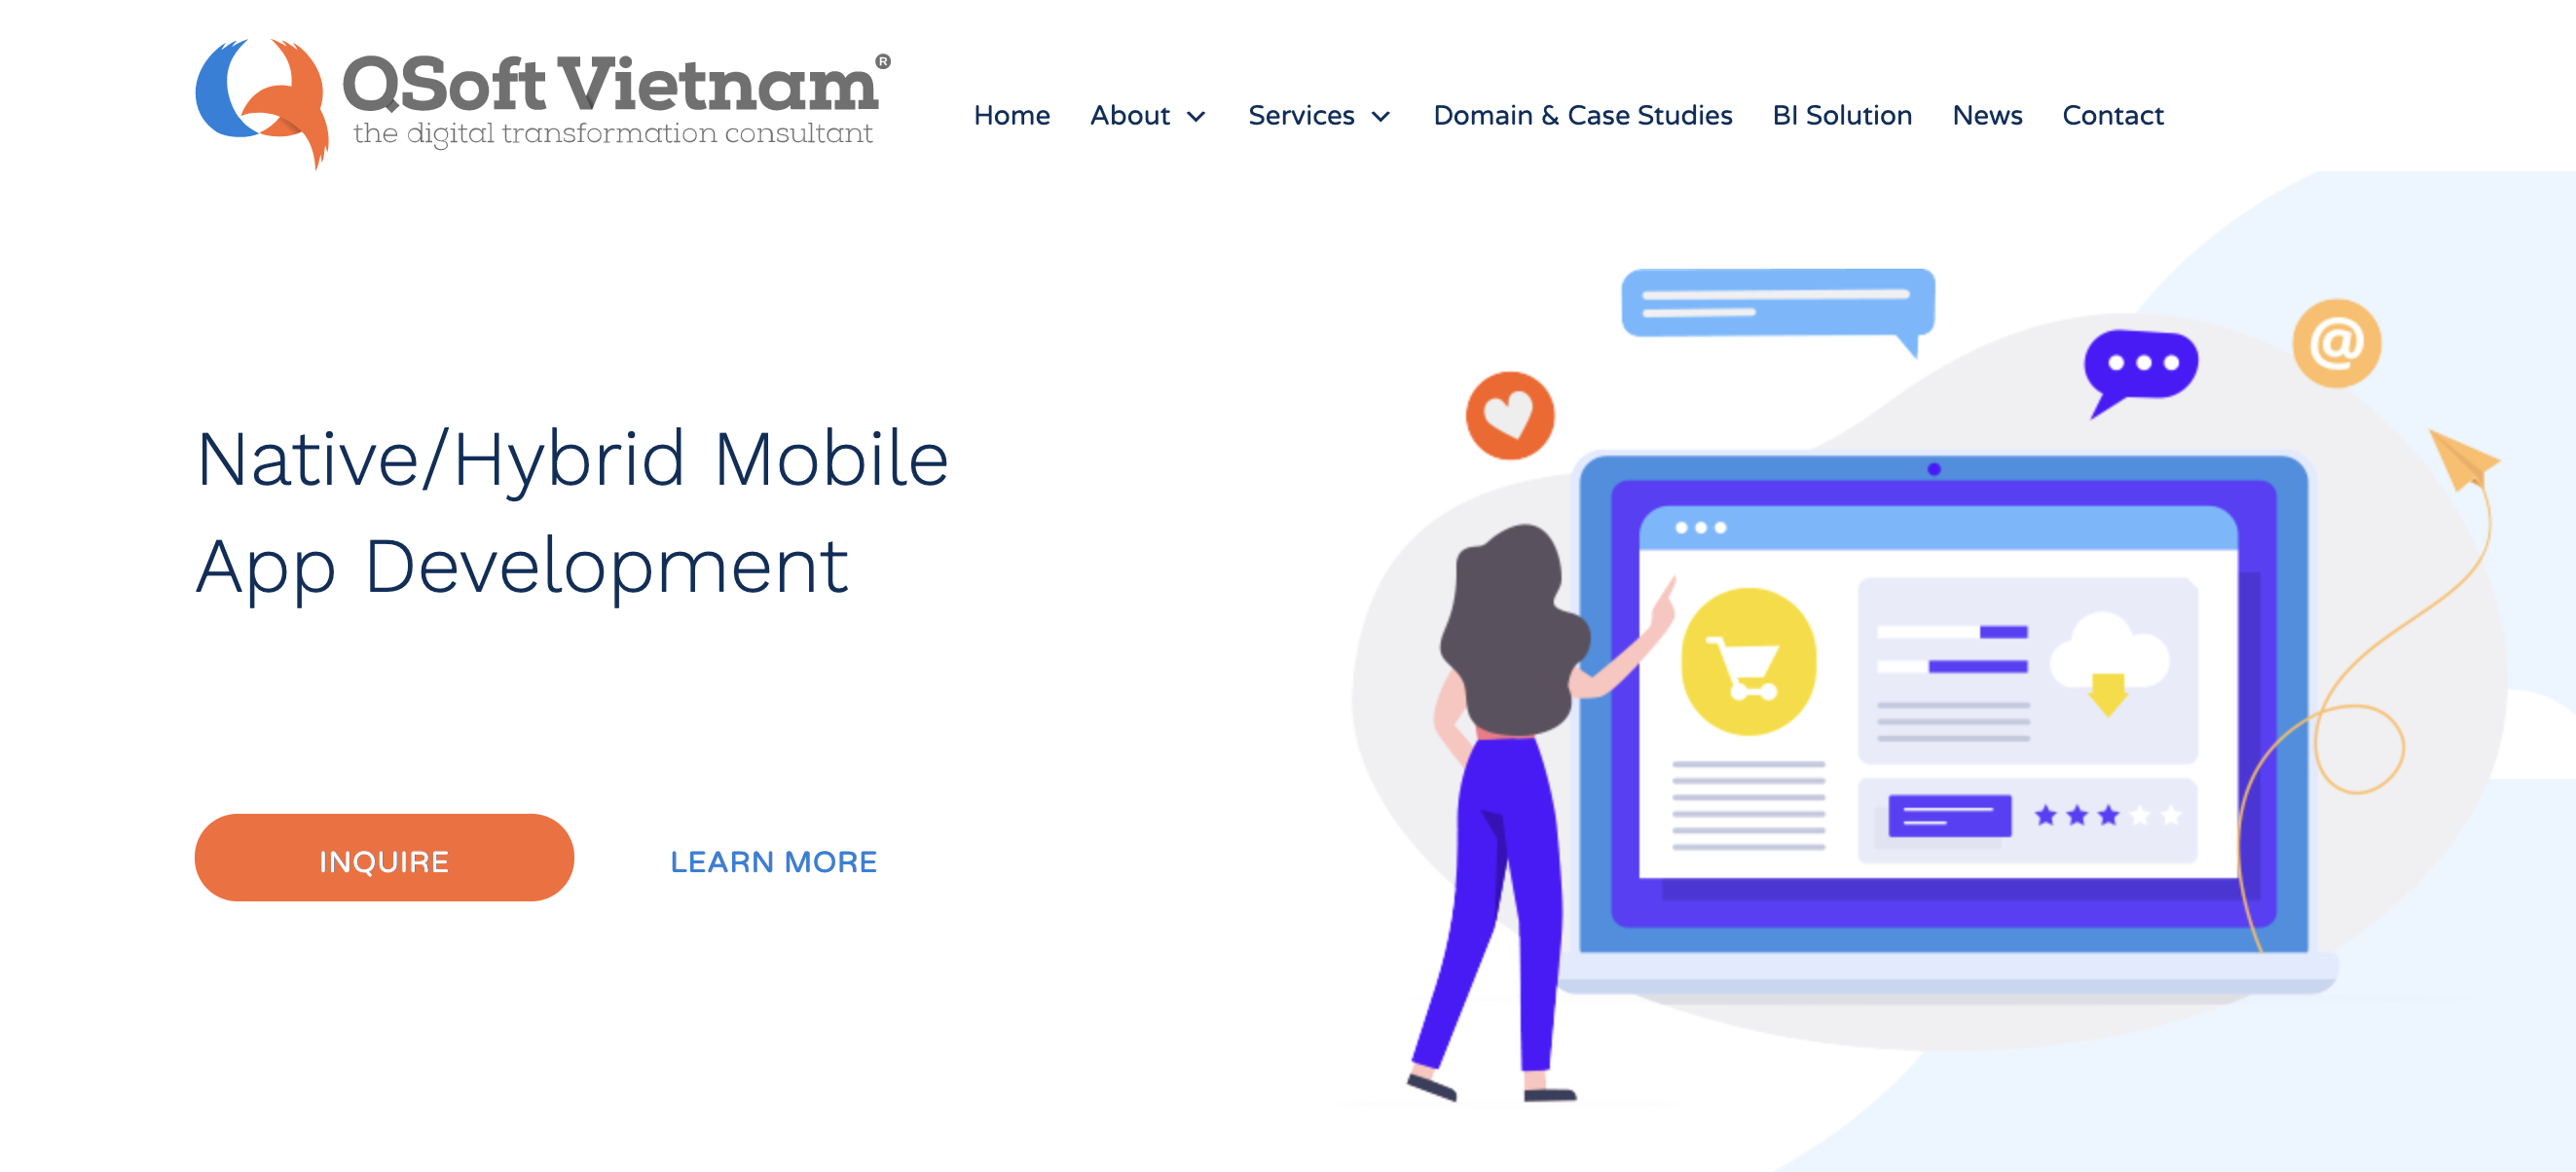 mobile application development, outsourcing company, software outsourcing